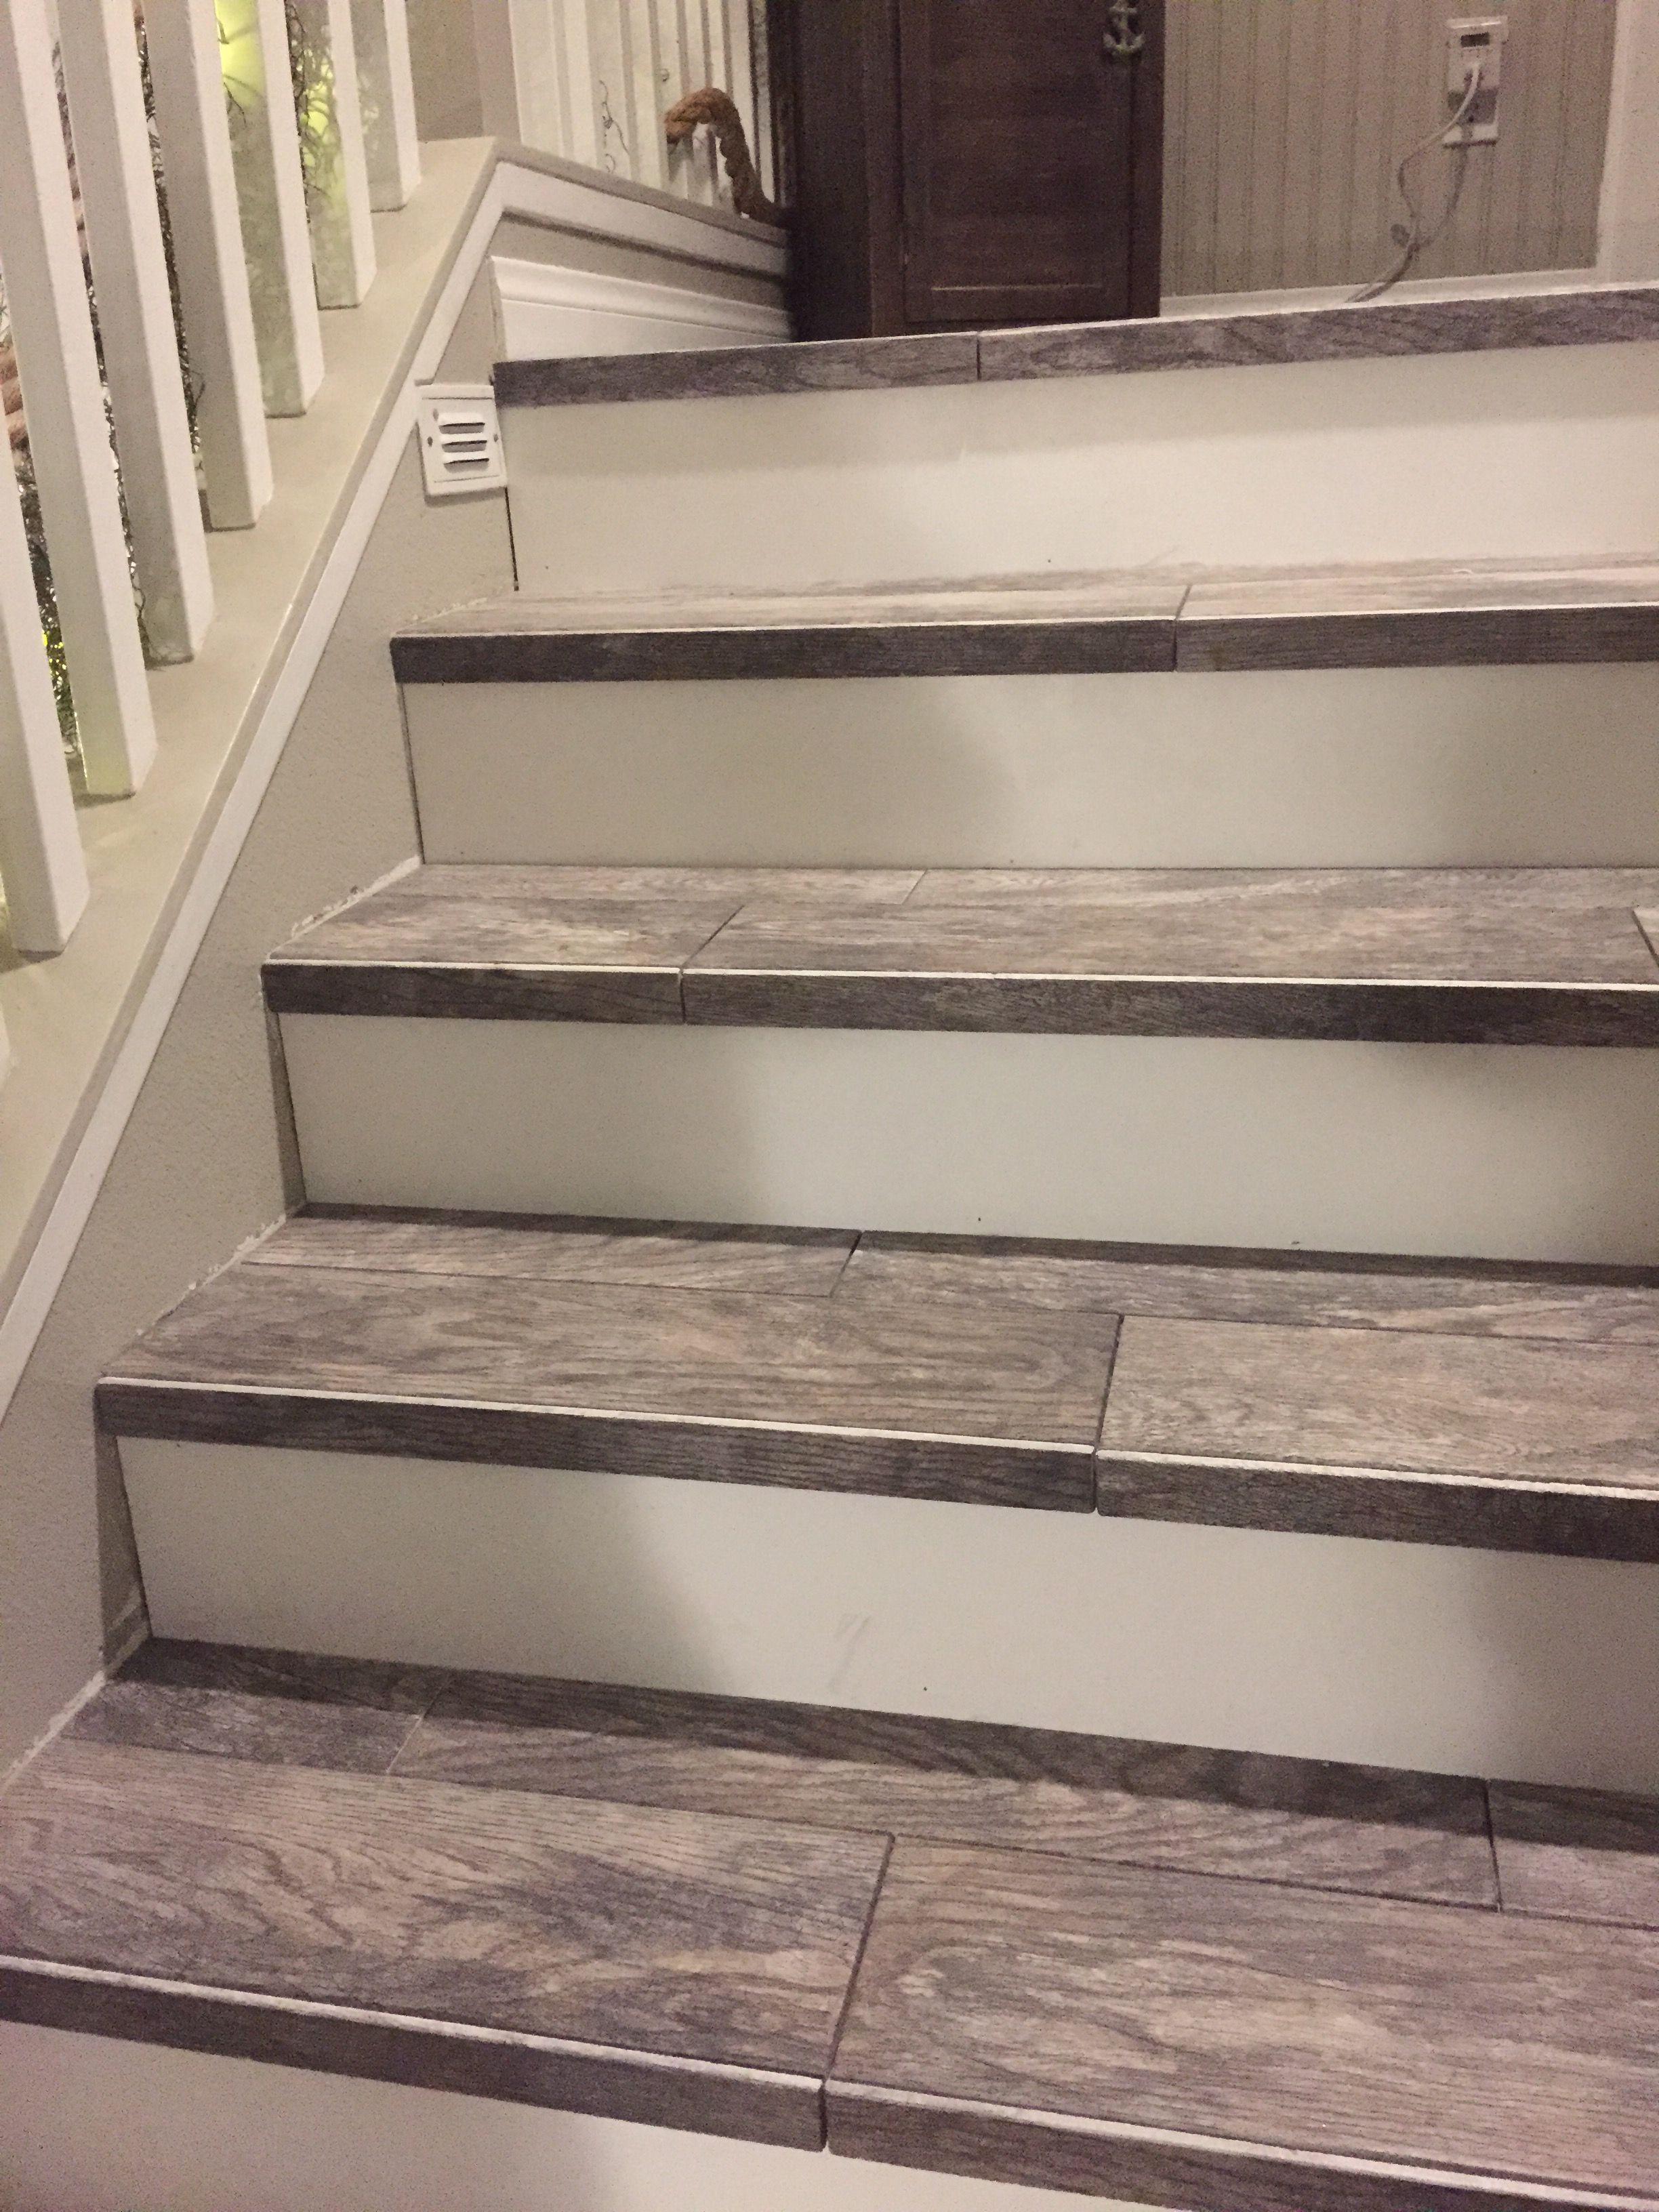 Wood look tiled stair case | DIY house house | Pinterest ...